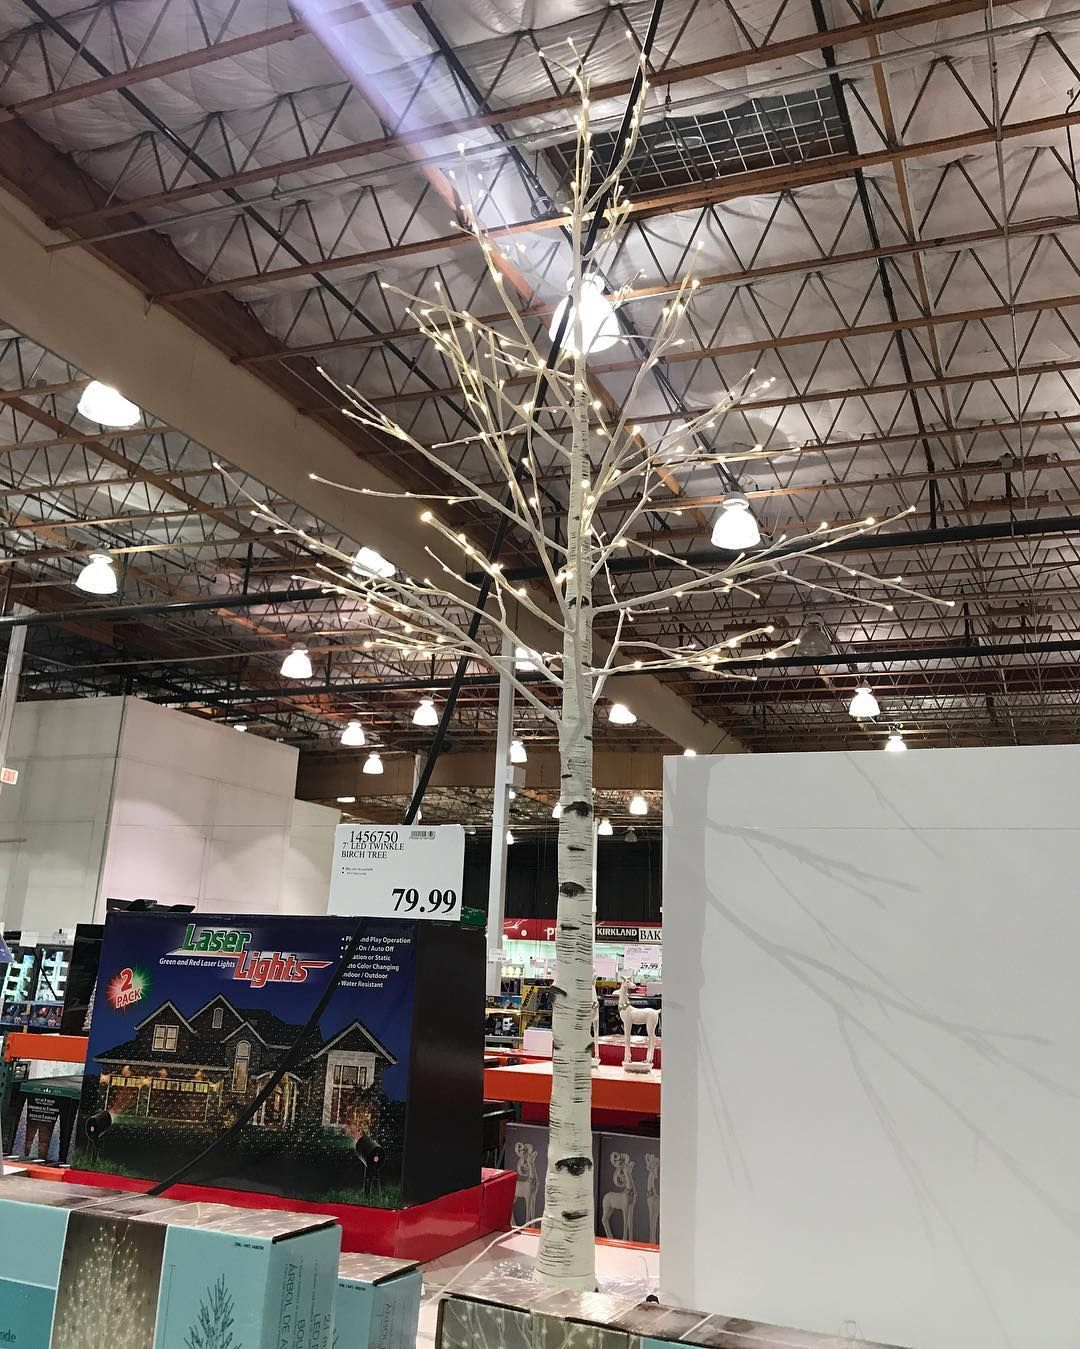 Costco Twinkling Christmas Tree: Beautiful 7' #led Twinkle #birchtree Only $79.99